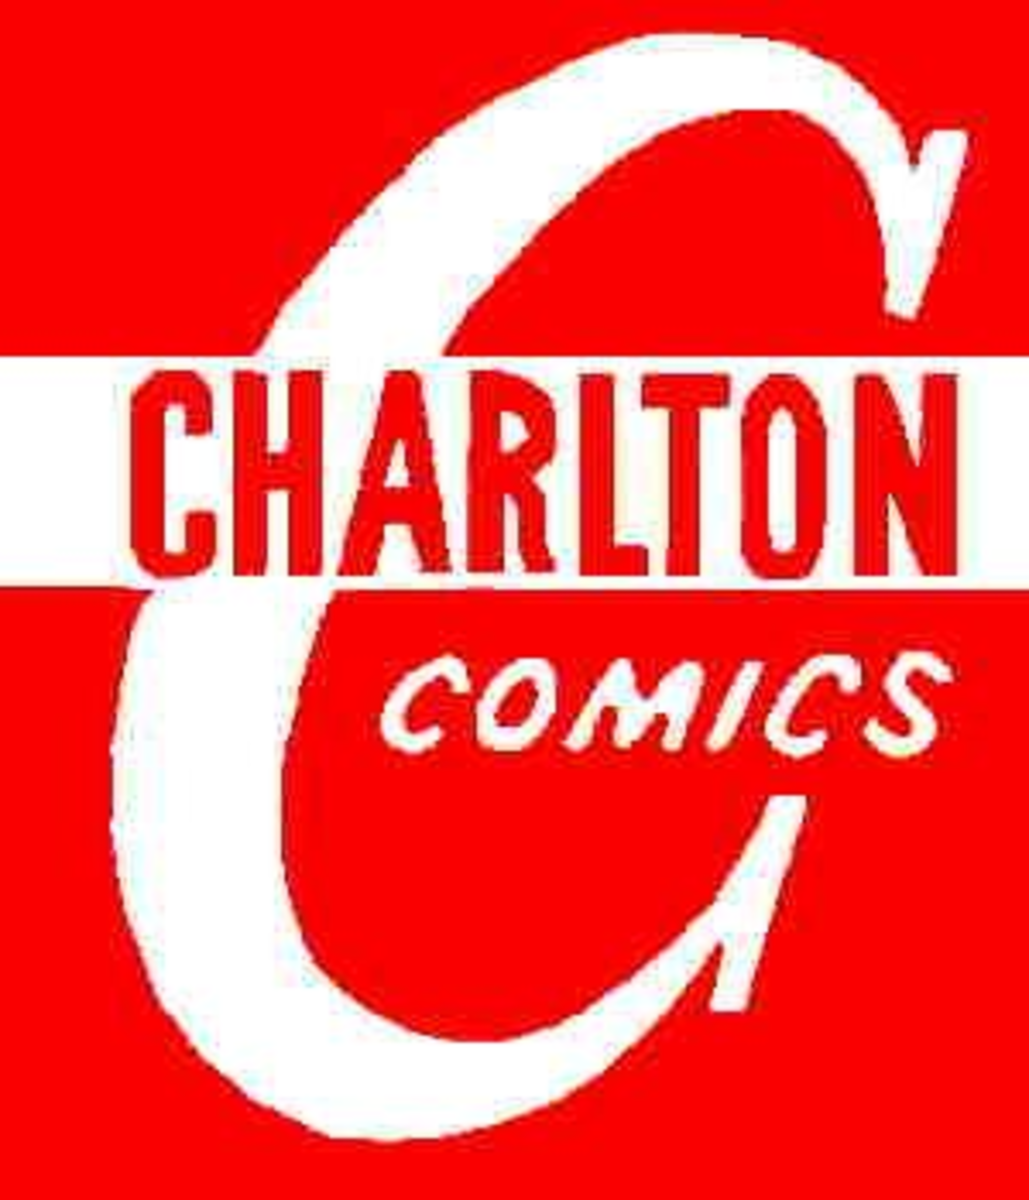 The Best Worst Comic Book Company Ever: Charlton Comics